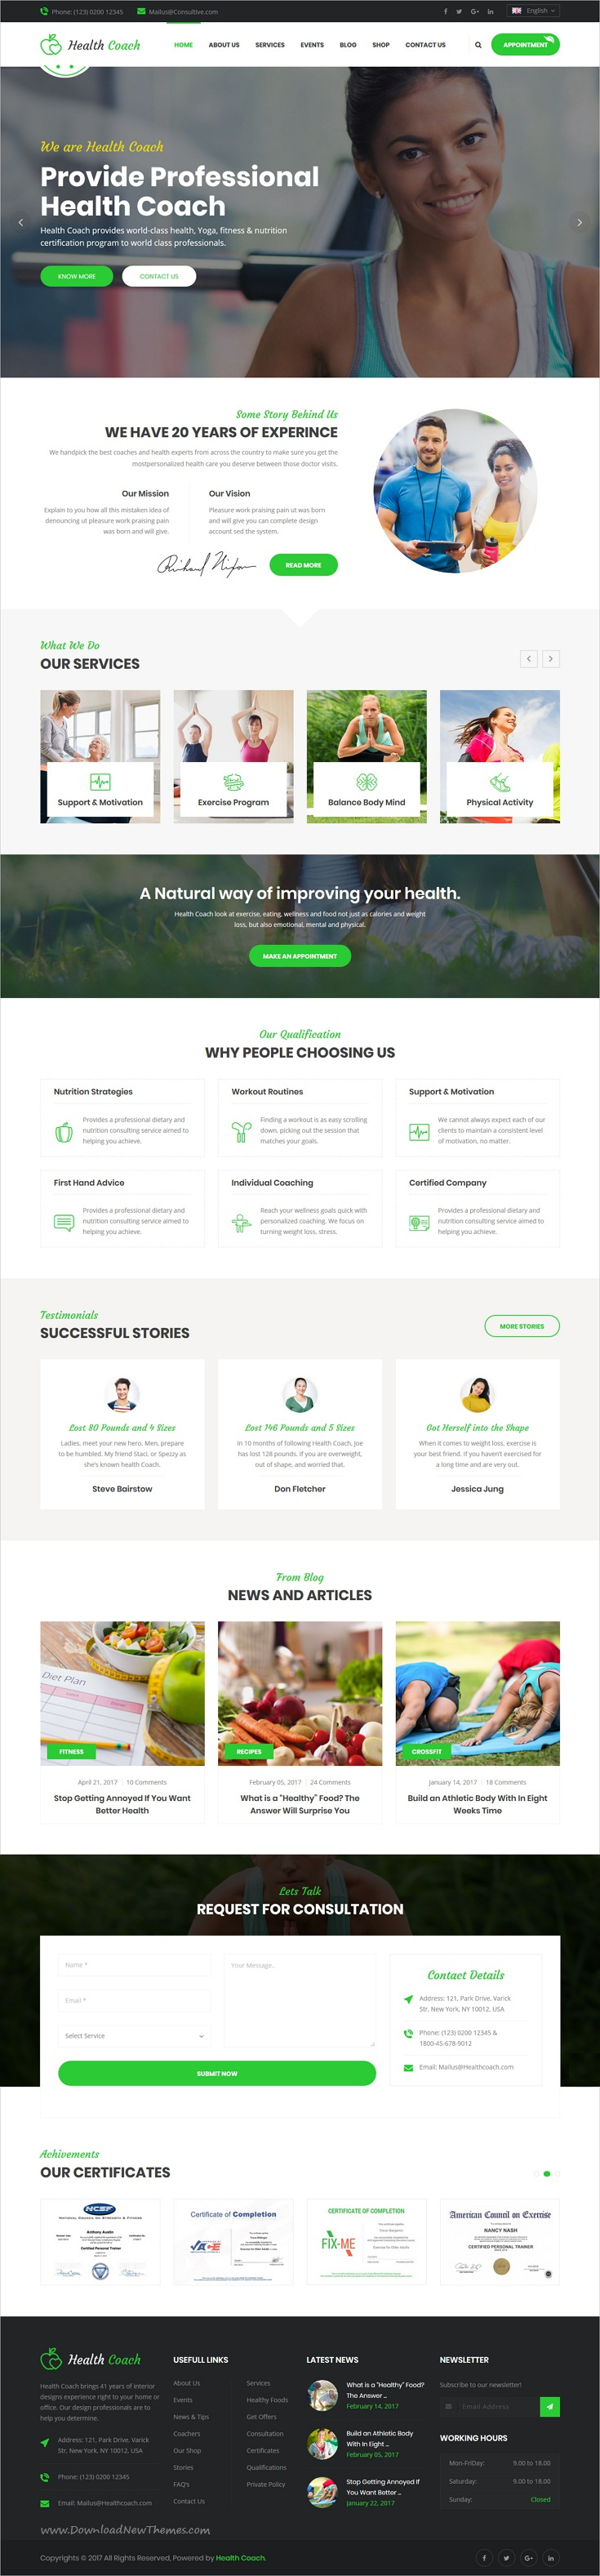 Health Coach - HTML Template for Personal Life Coaching Website ...